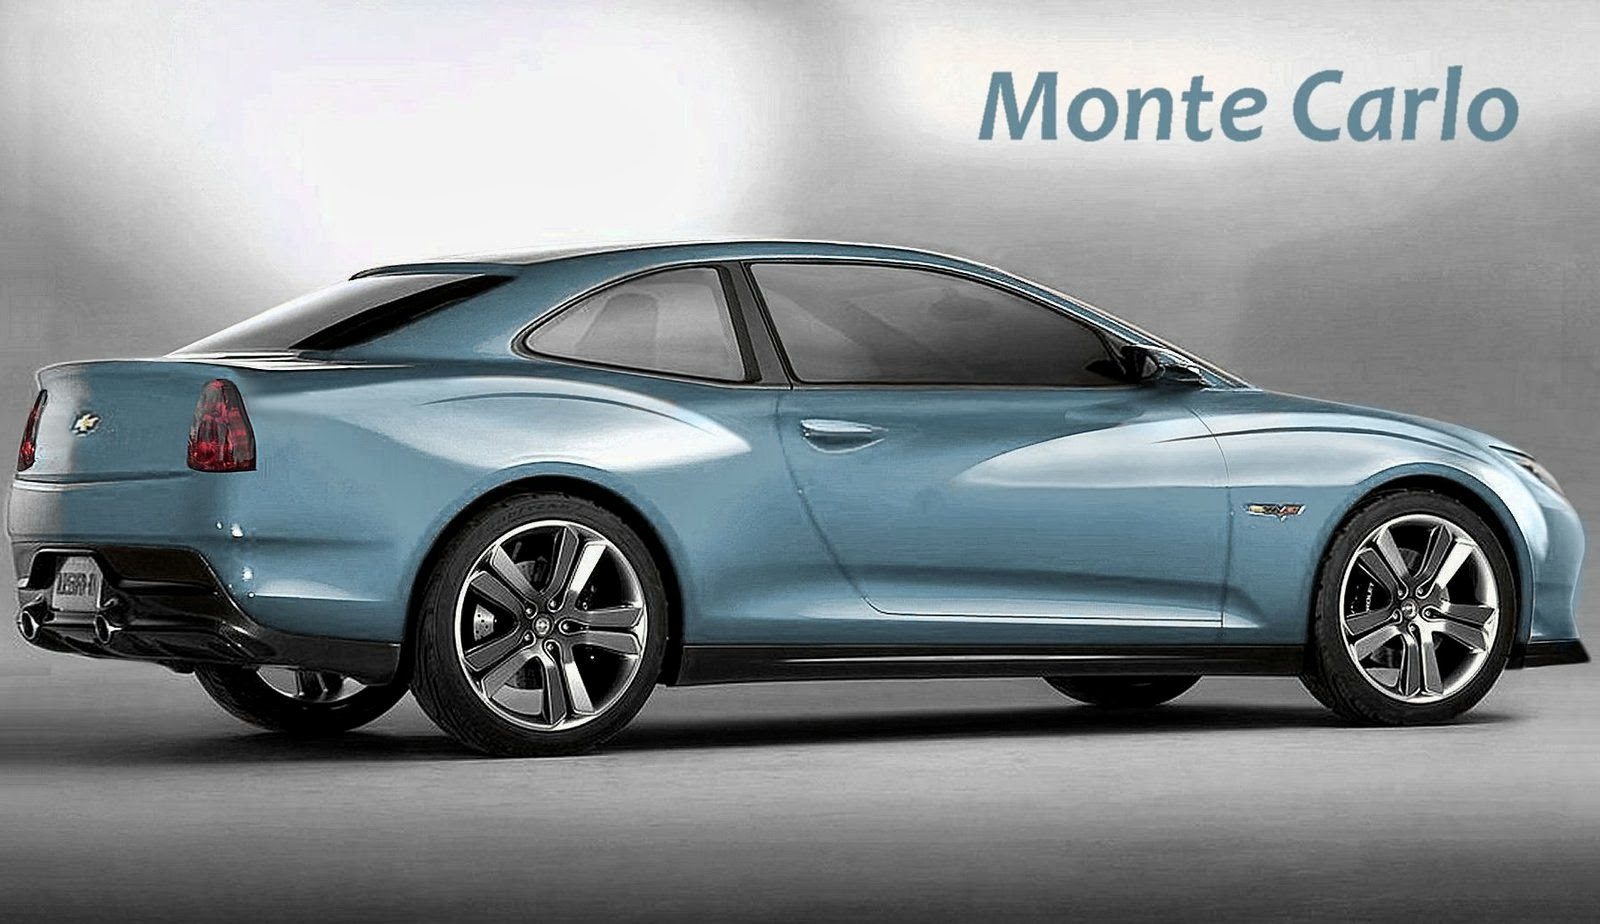 2018 chevrolet monte carlo ss cars release date and price 2017 2018 cars reviews